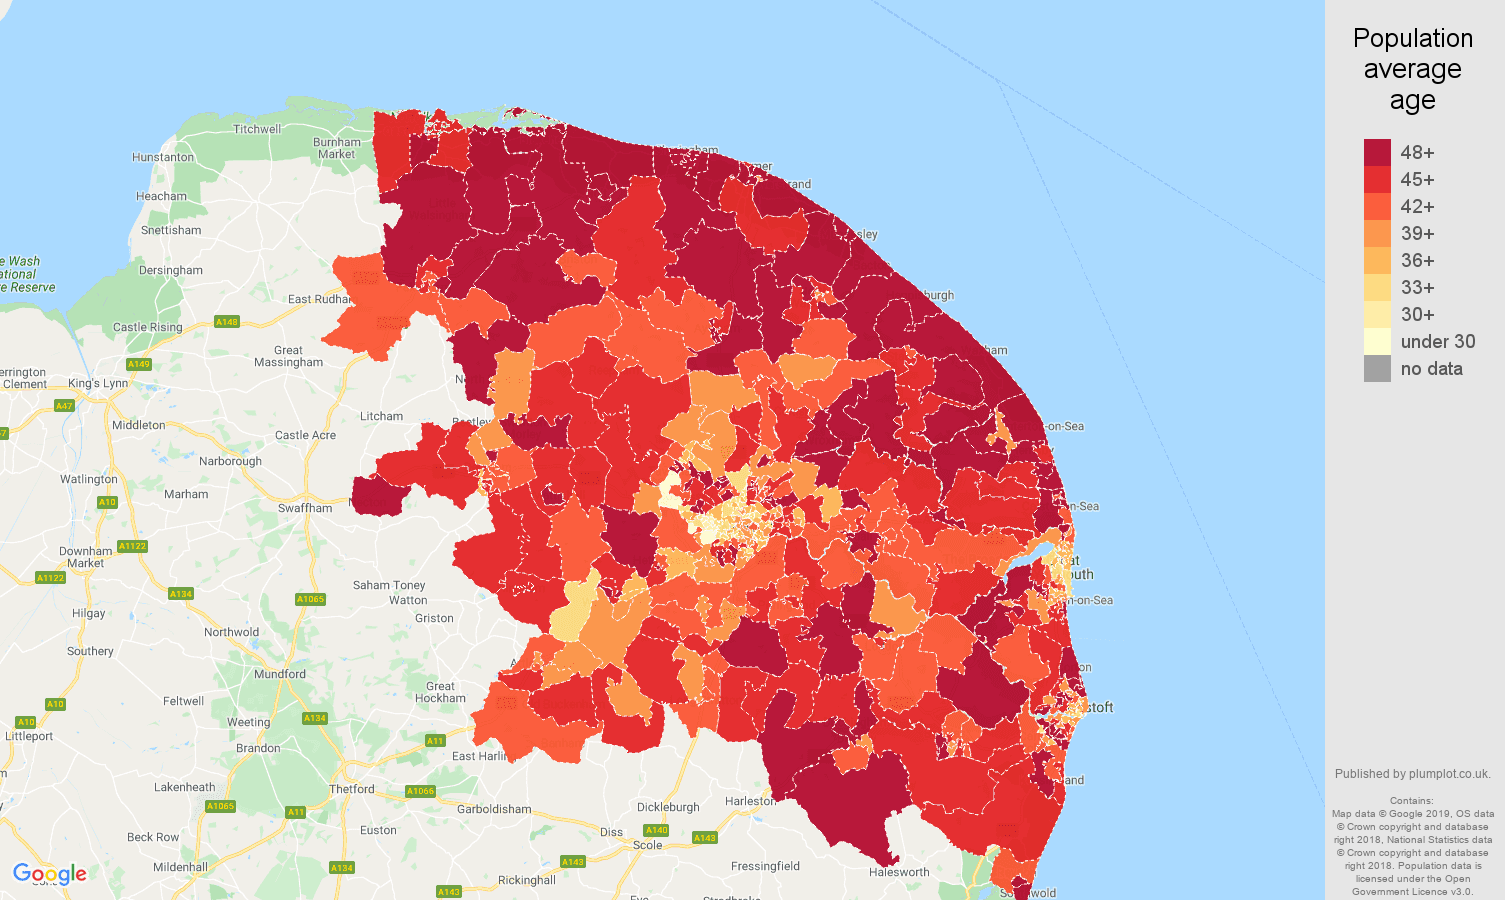 Norwich population average age map